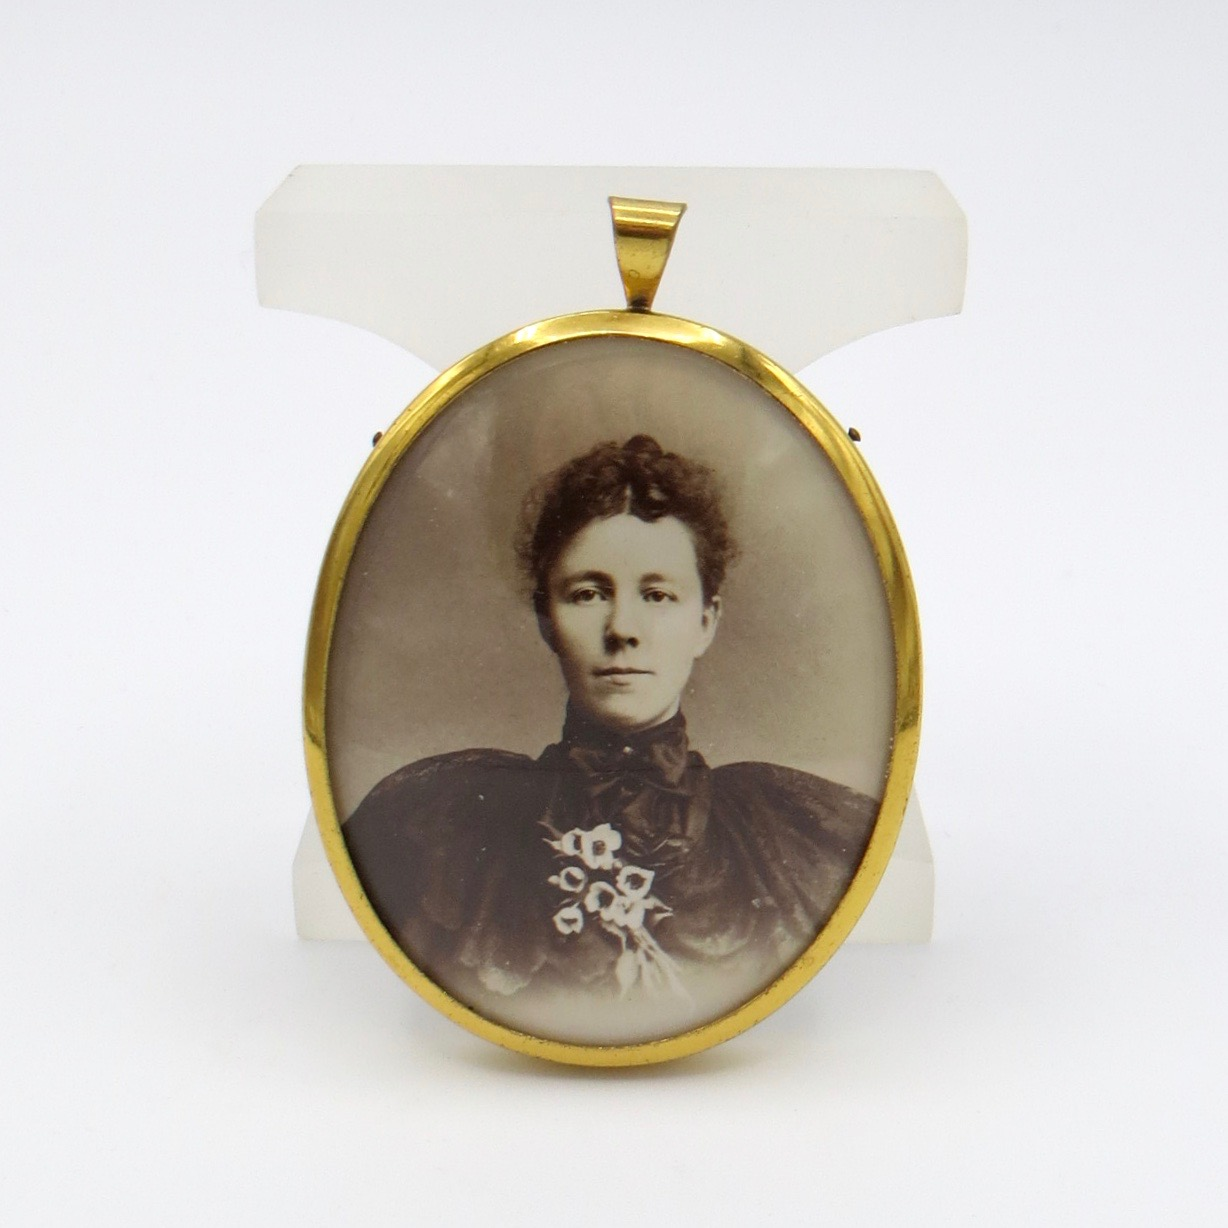 Vintage Photo Pendant in a Gold-Filled Frame